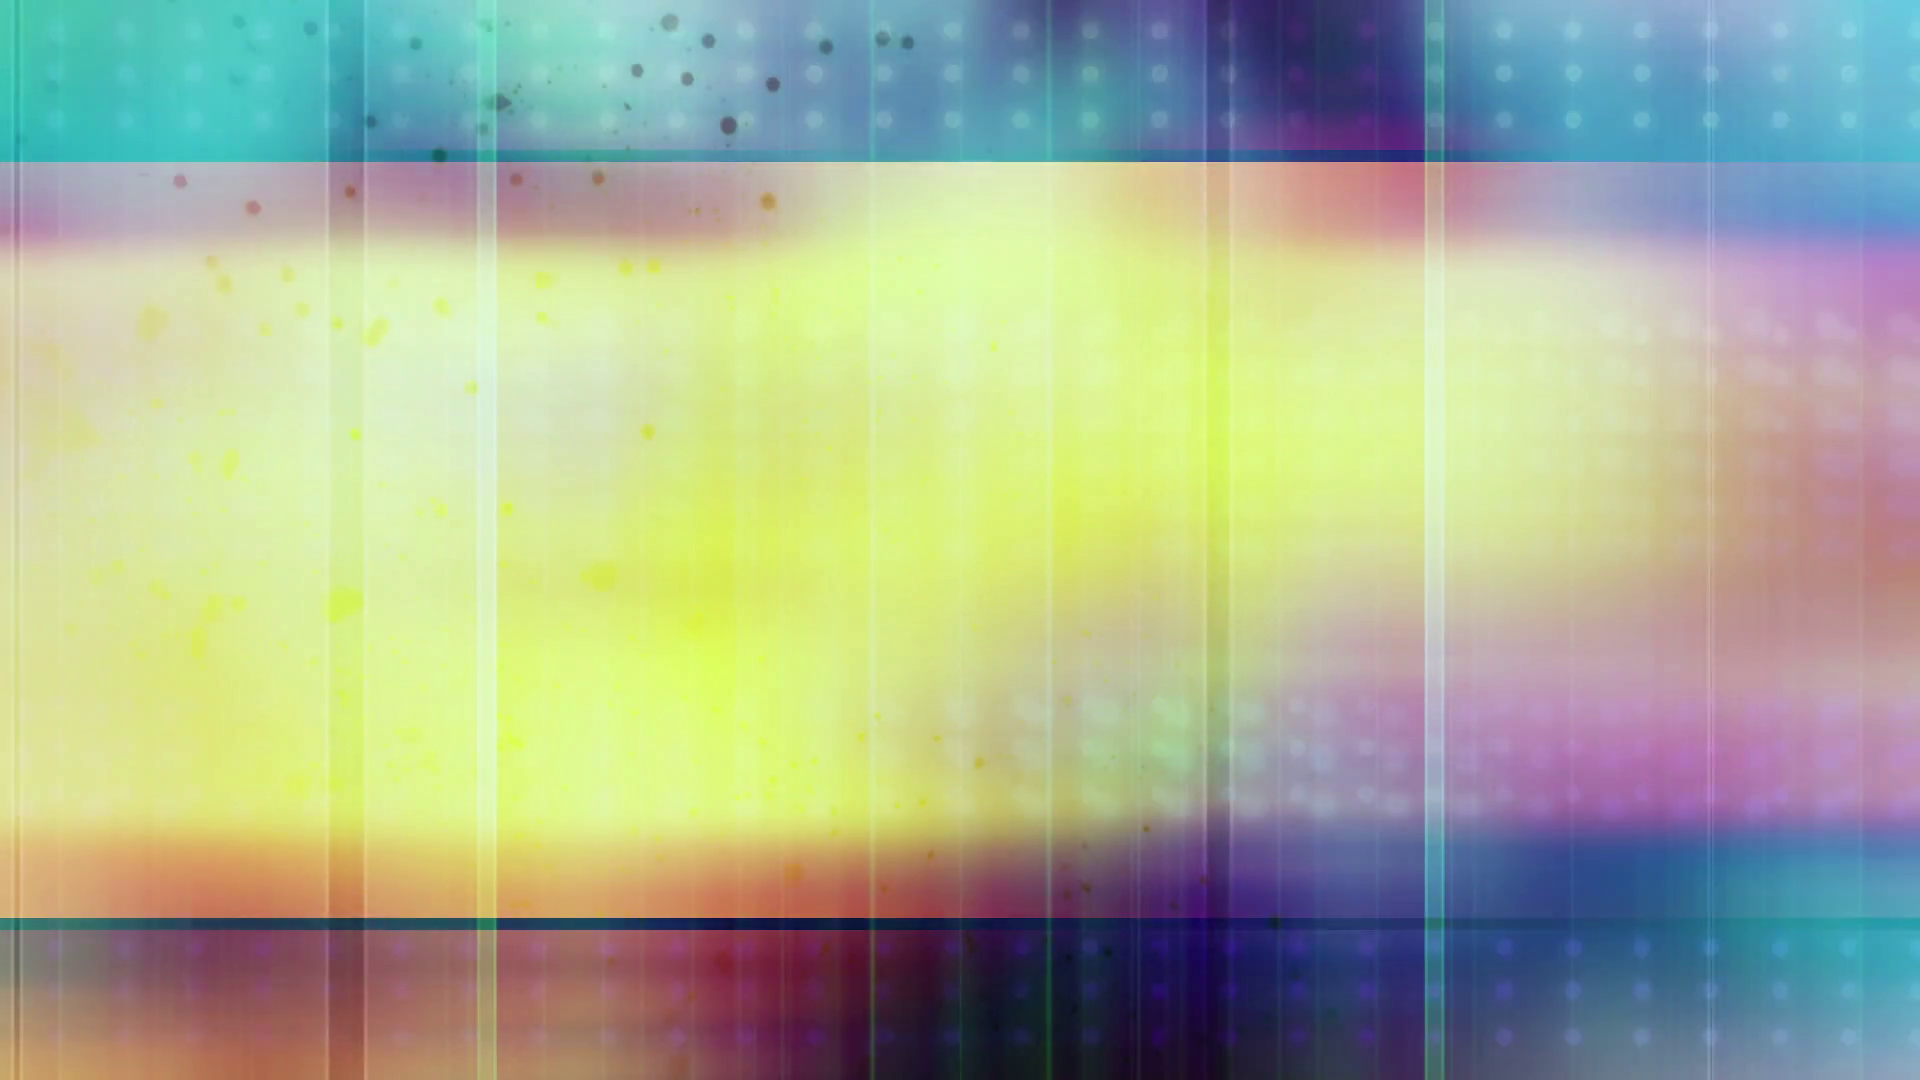 videoblocks-new-retro-multi-color-shapes-abstract-animated-looping-background_runfpofax_thumbnail-full01